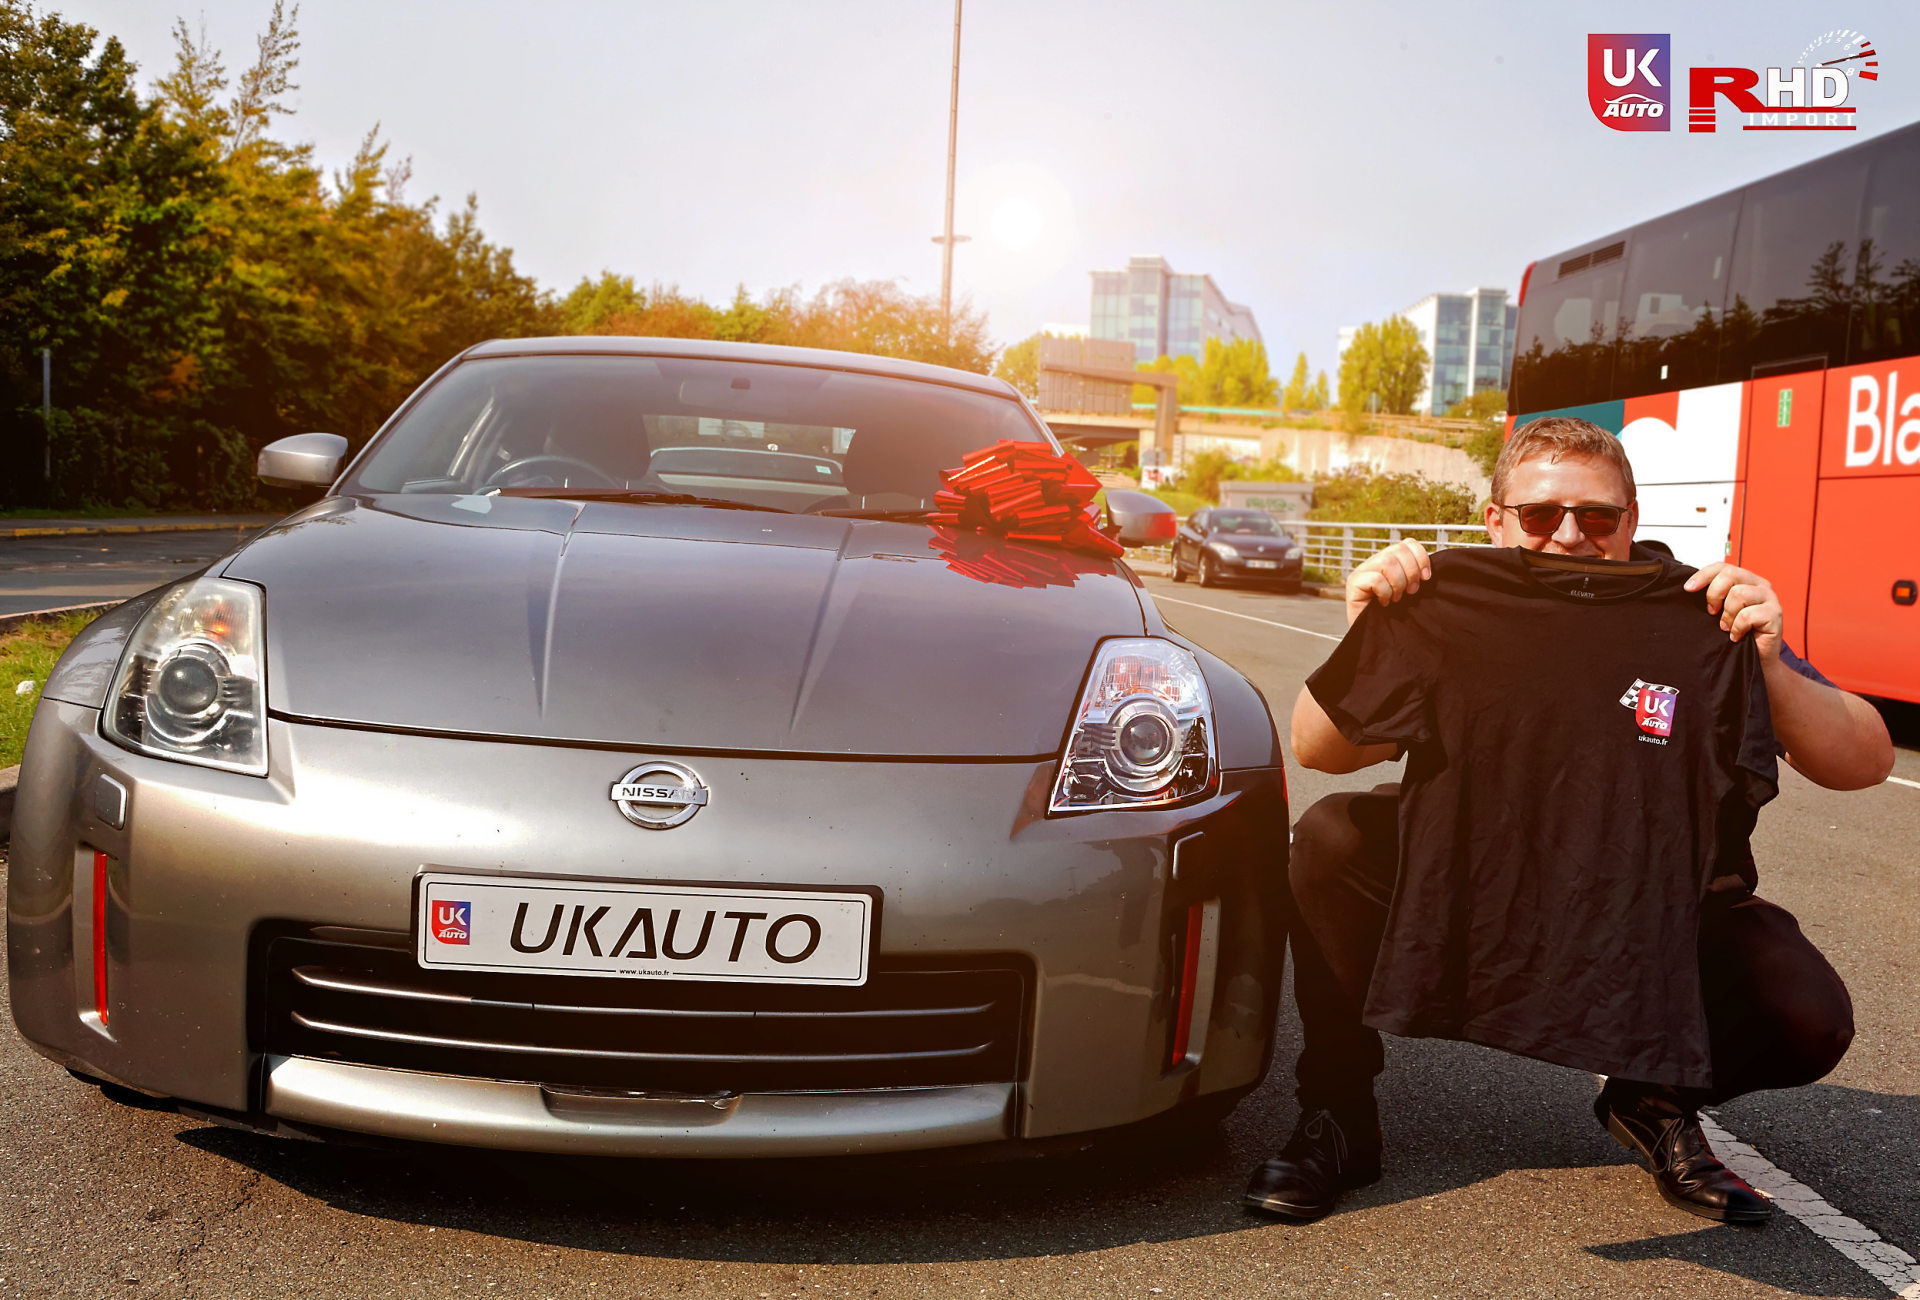 Nissan 350z rhd v6 nissan angleterre nissan uk nissan import rhd voiture occasion mandataire nissan 14 DxO - NISSAN ANGLETERRE IMPORT NISSAN 350Z V6 RHD 3.5 MANDATAIRE NISSAN AUTO AVANT LE BREXIT FELICITATION A XABI